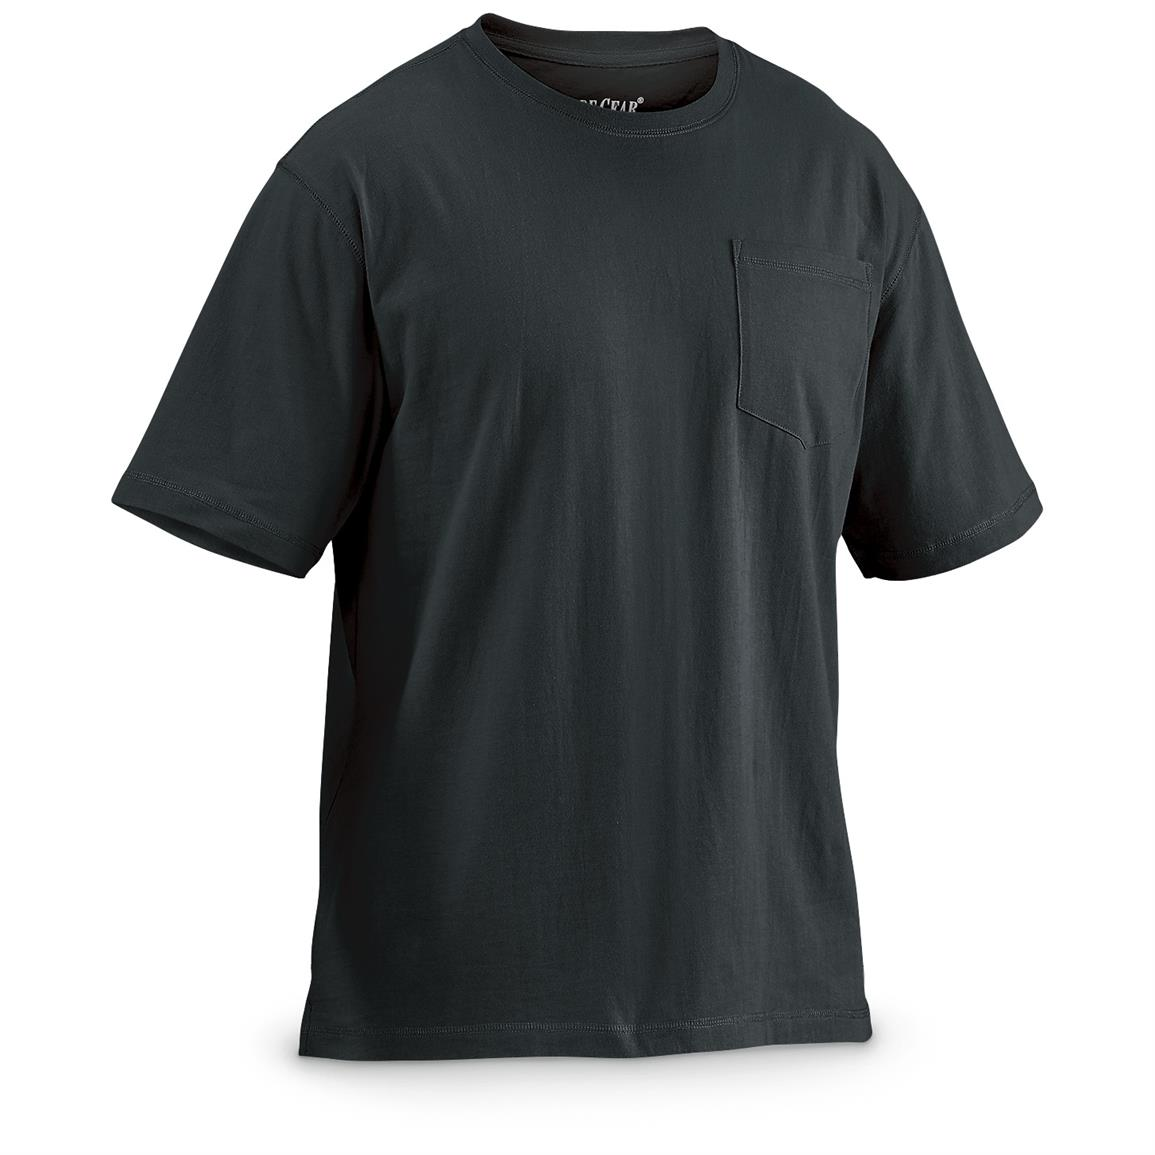 Guide Gear Men's Heavy-Weight Pocket Short-Sleeve T-Shirt, Black